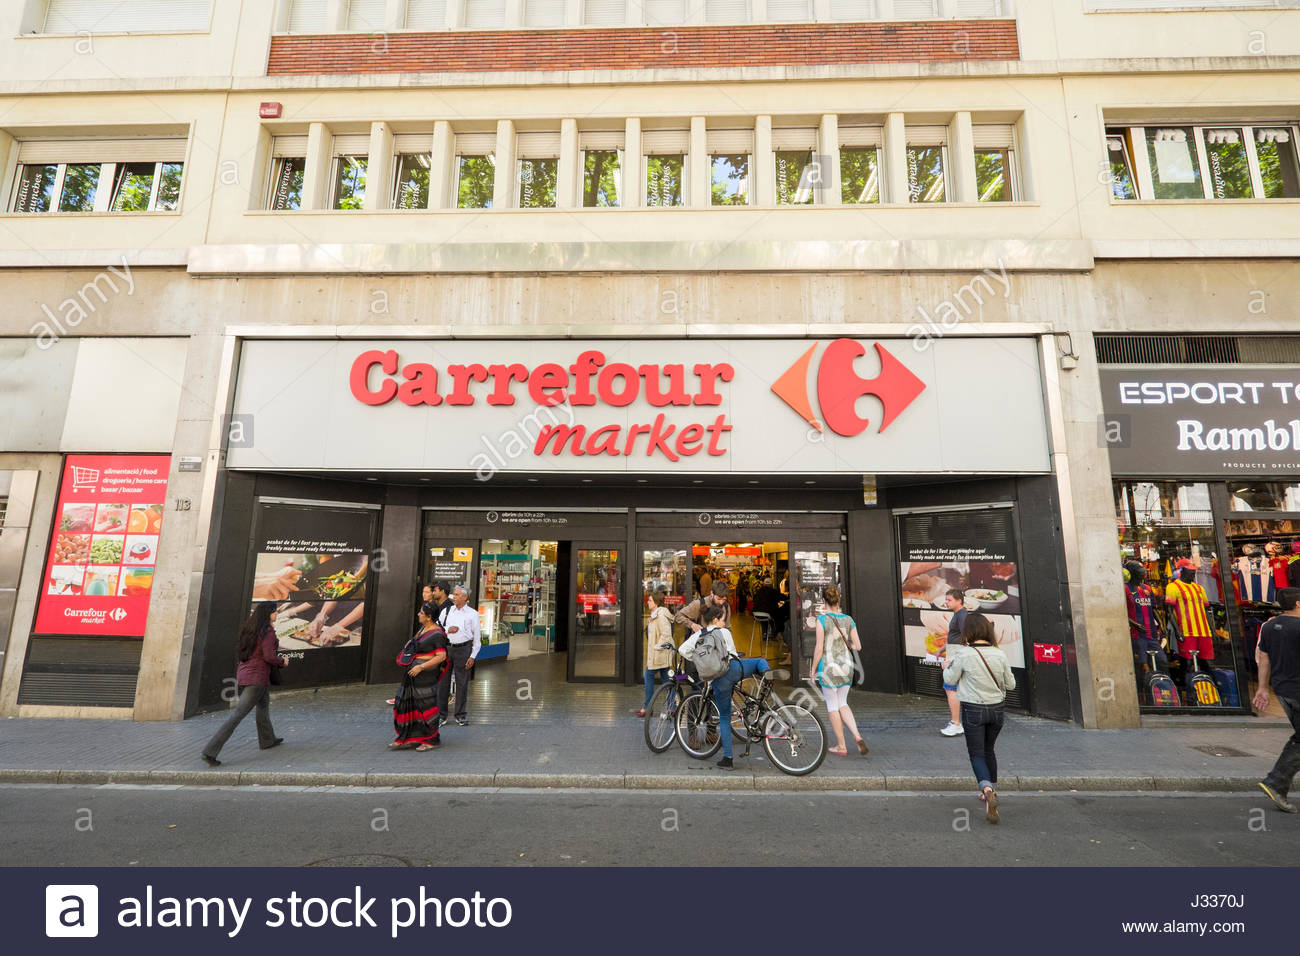 entrance to carrefour supermarket la rambla ciutat vella stock photo royalty free image. Black Bedroom Furniture Sets. Home Design Ideas